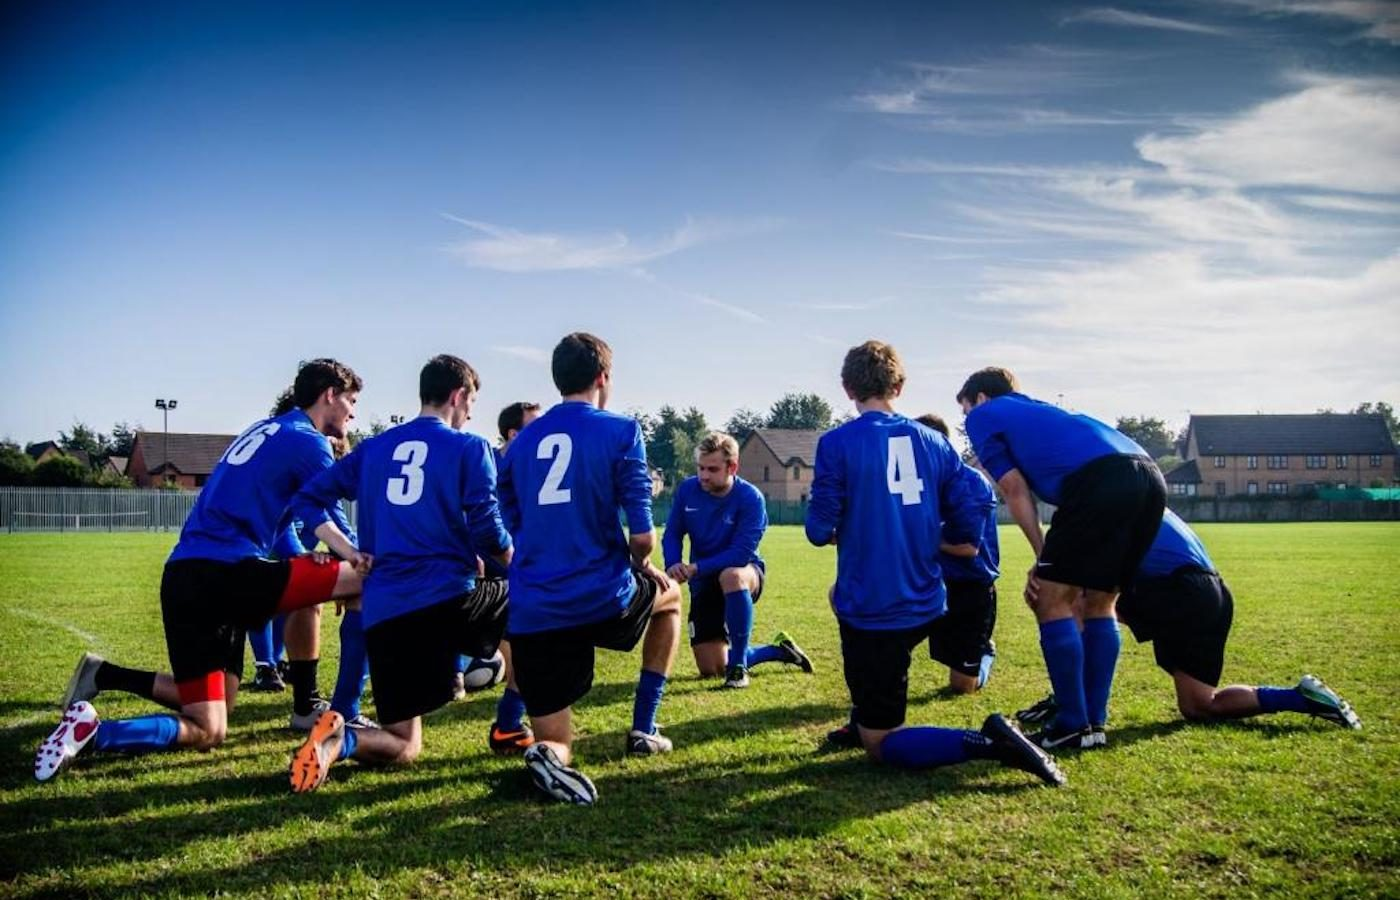 soccer team kneeling